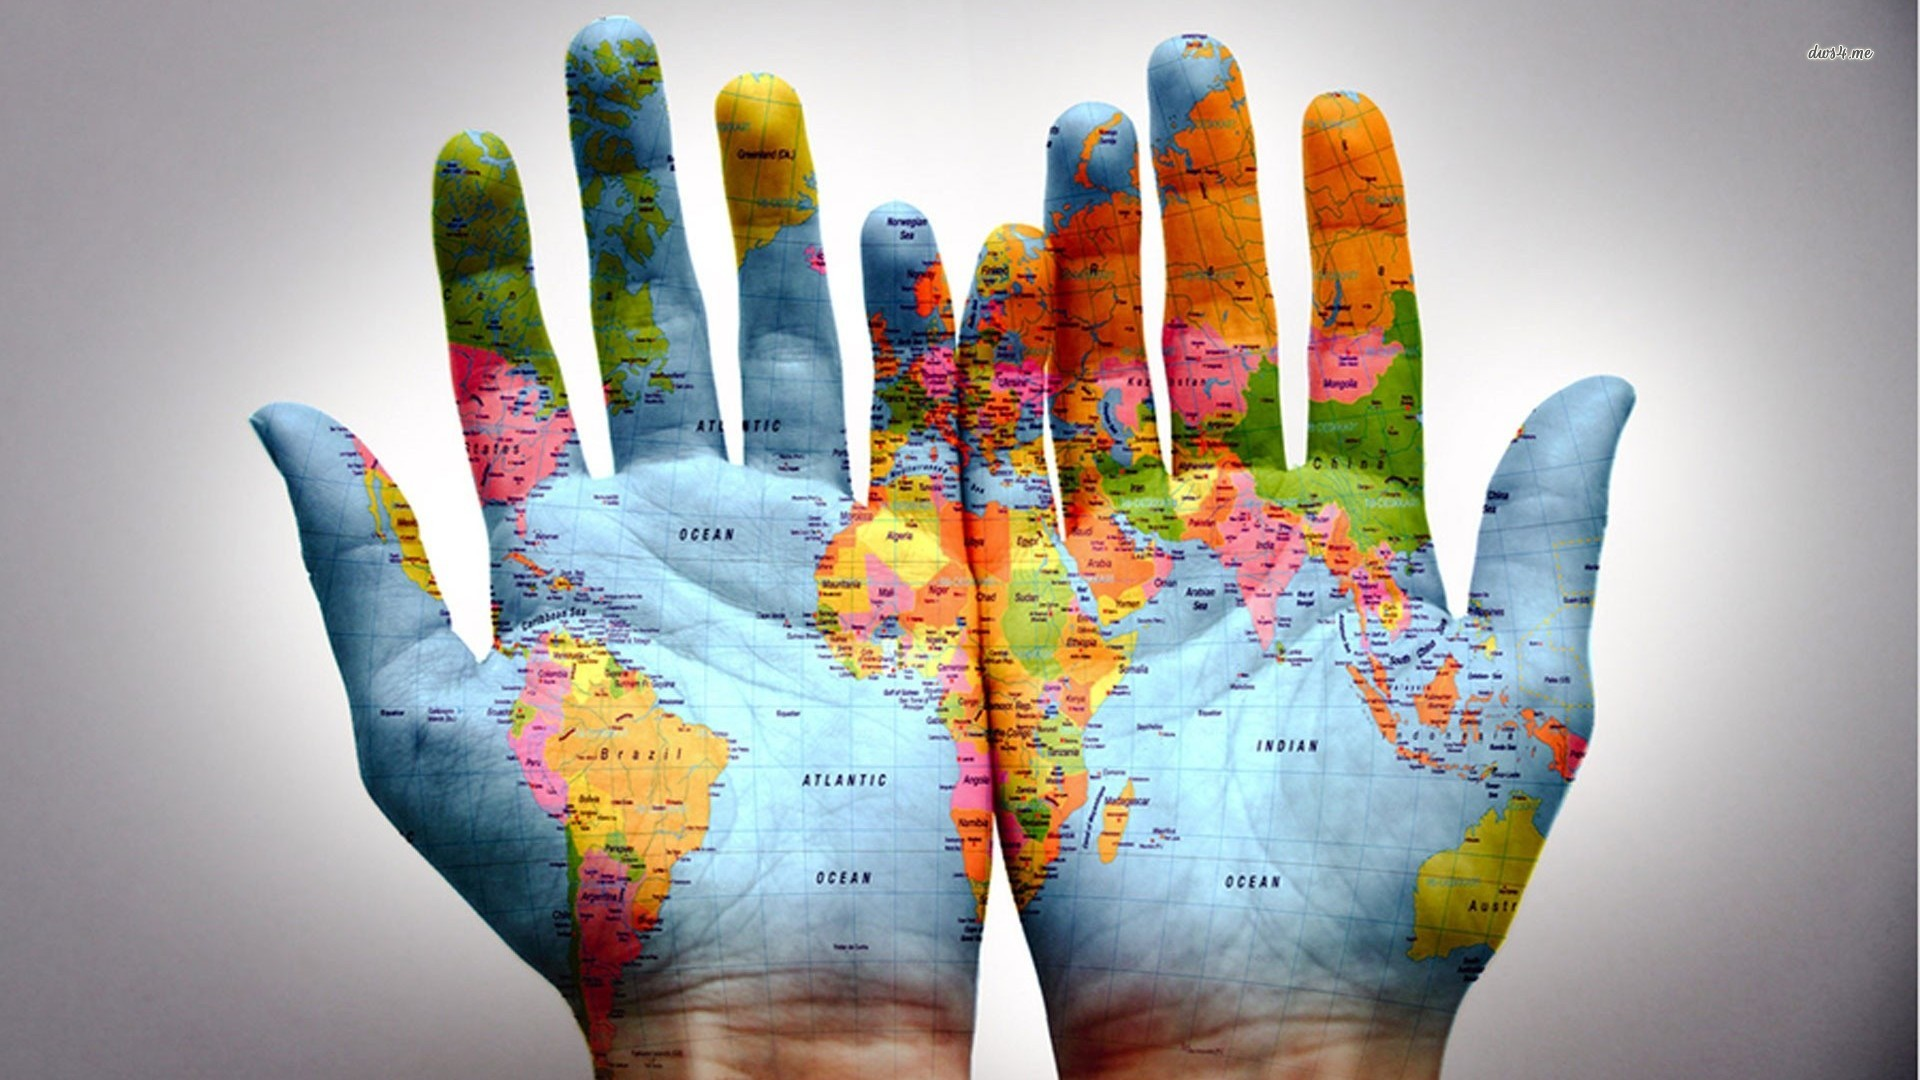 I got the whole world in my hands